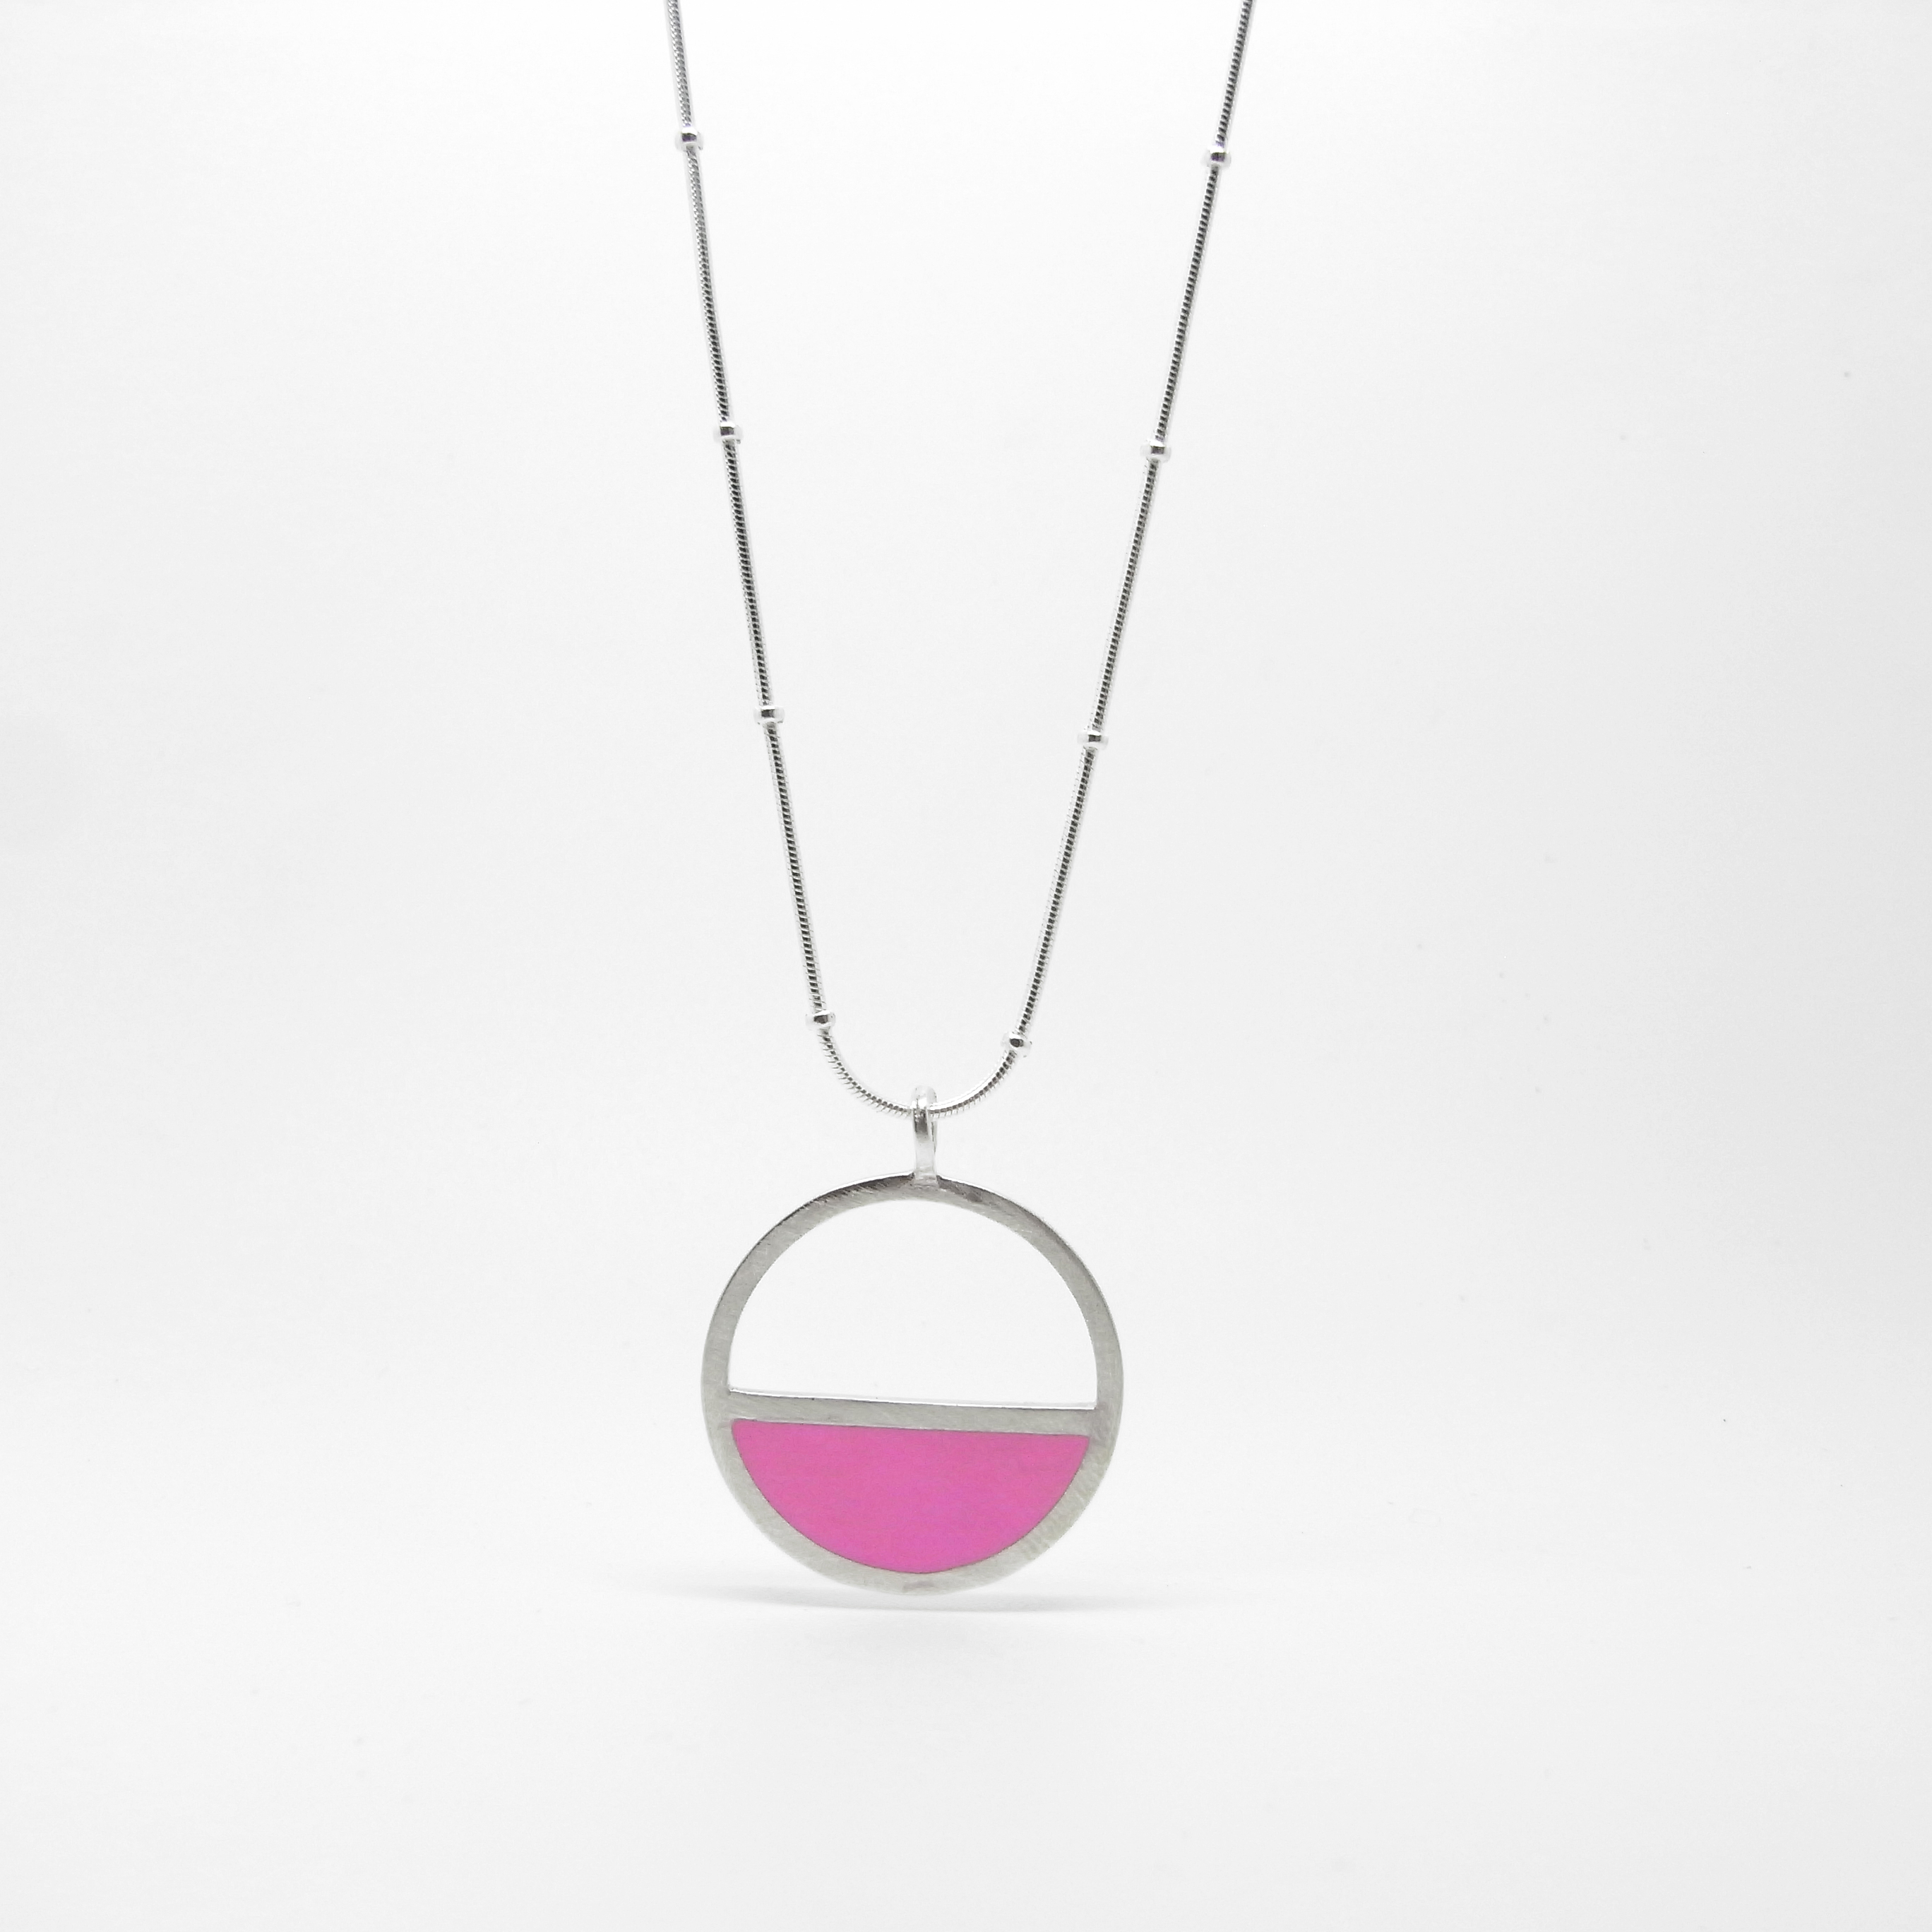 SALE - Silver & Resin Semi Circle Necklace Large